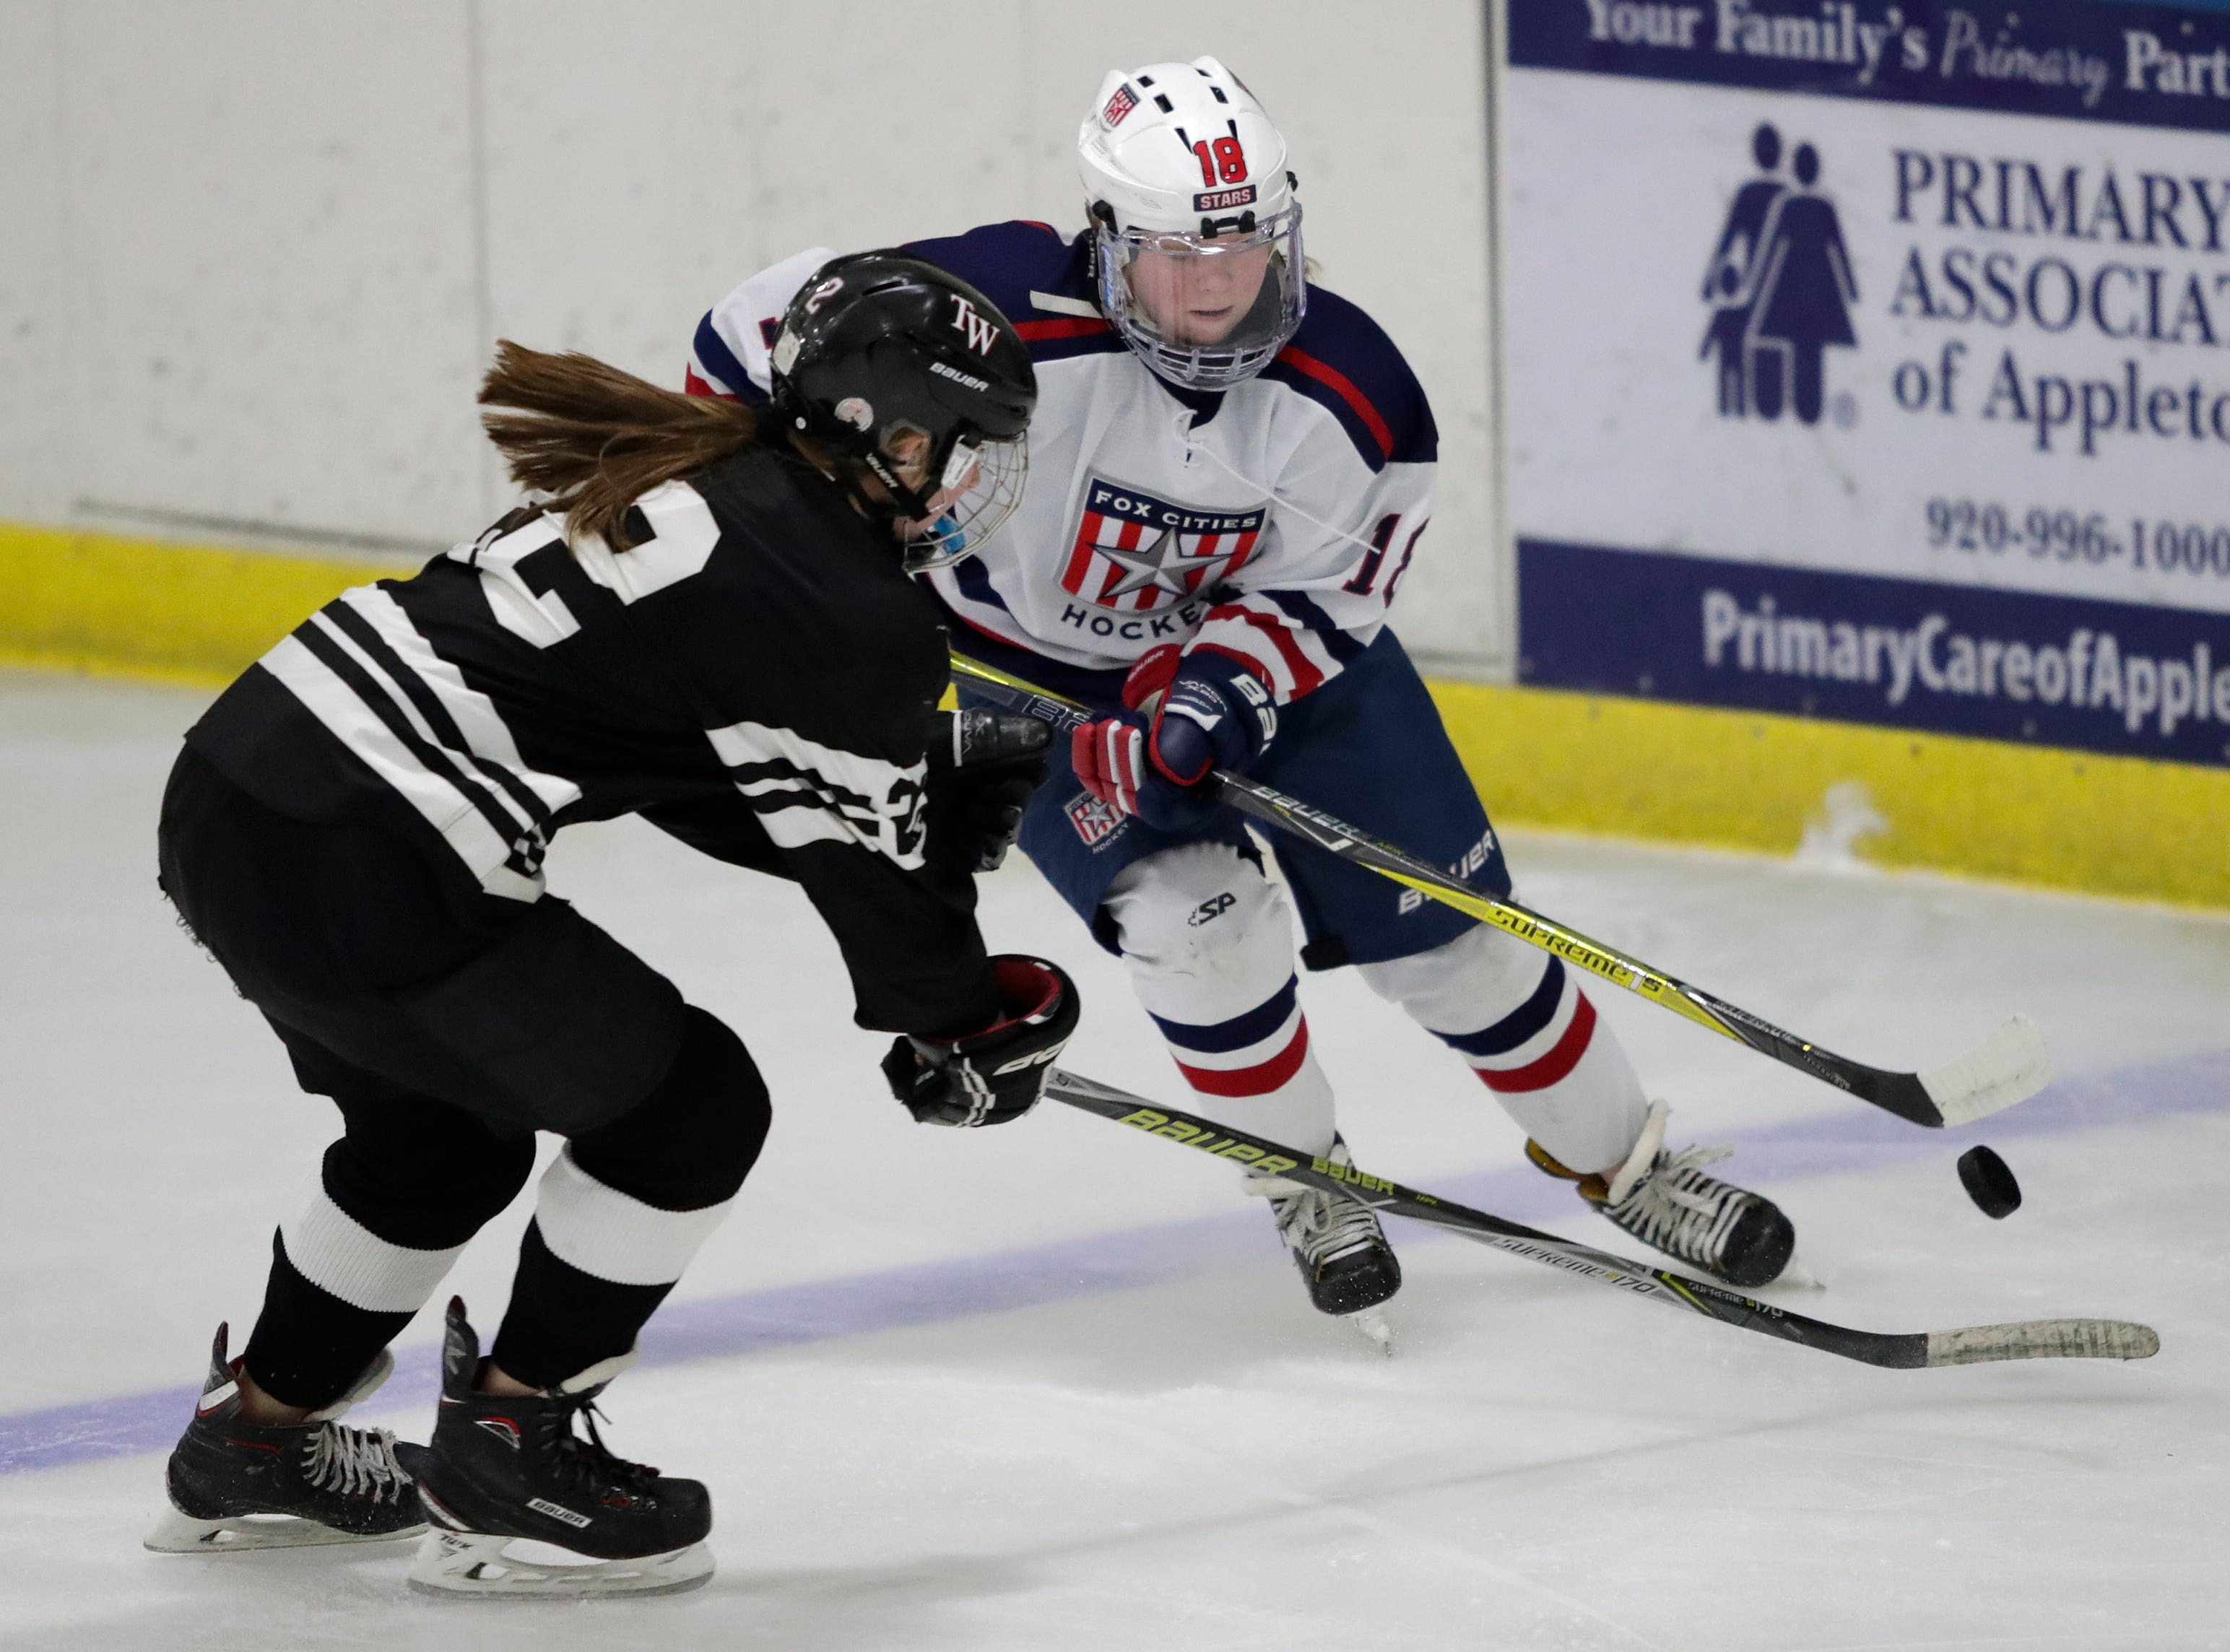 Fox Cities Stars' Madelynn Jablonski (10) tries to get past the Warbirds' Drew Deanovich (22) during their girls hockey game Thursday, January 10, 2019, at Tri-County Ice Arena in Fox Crossing, Wis. 